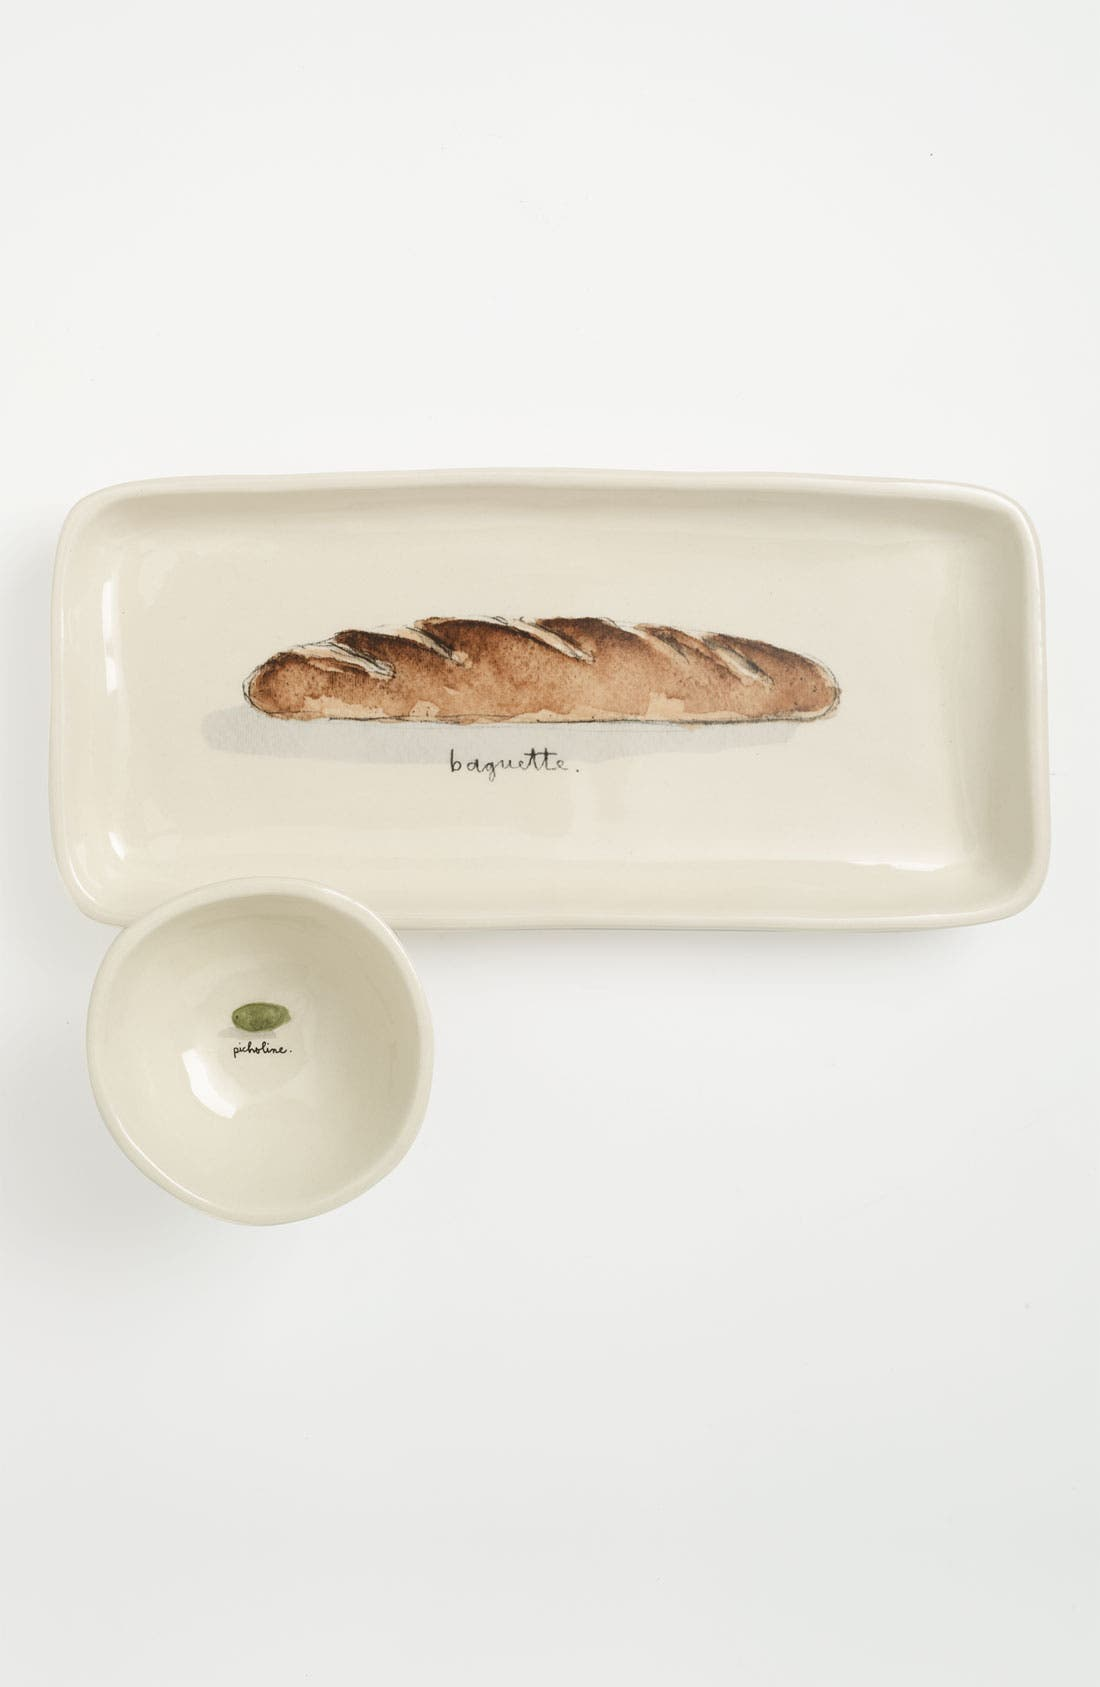 Alternate Image 1 Selected - Rae Dunn by Magenta Baguette Tray & Olive Bowl